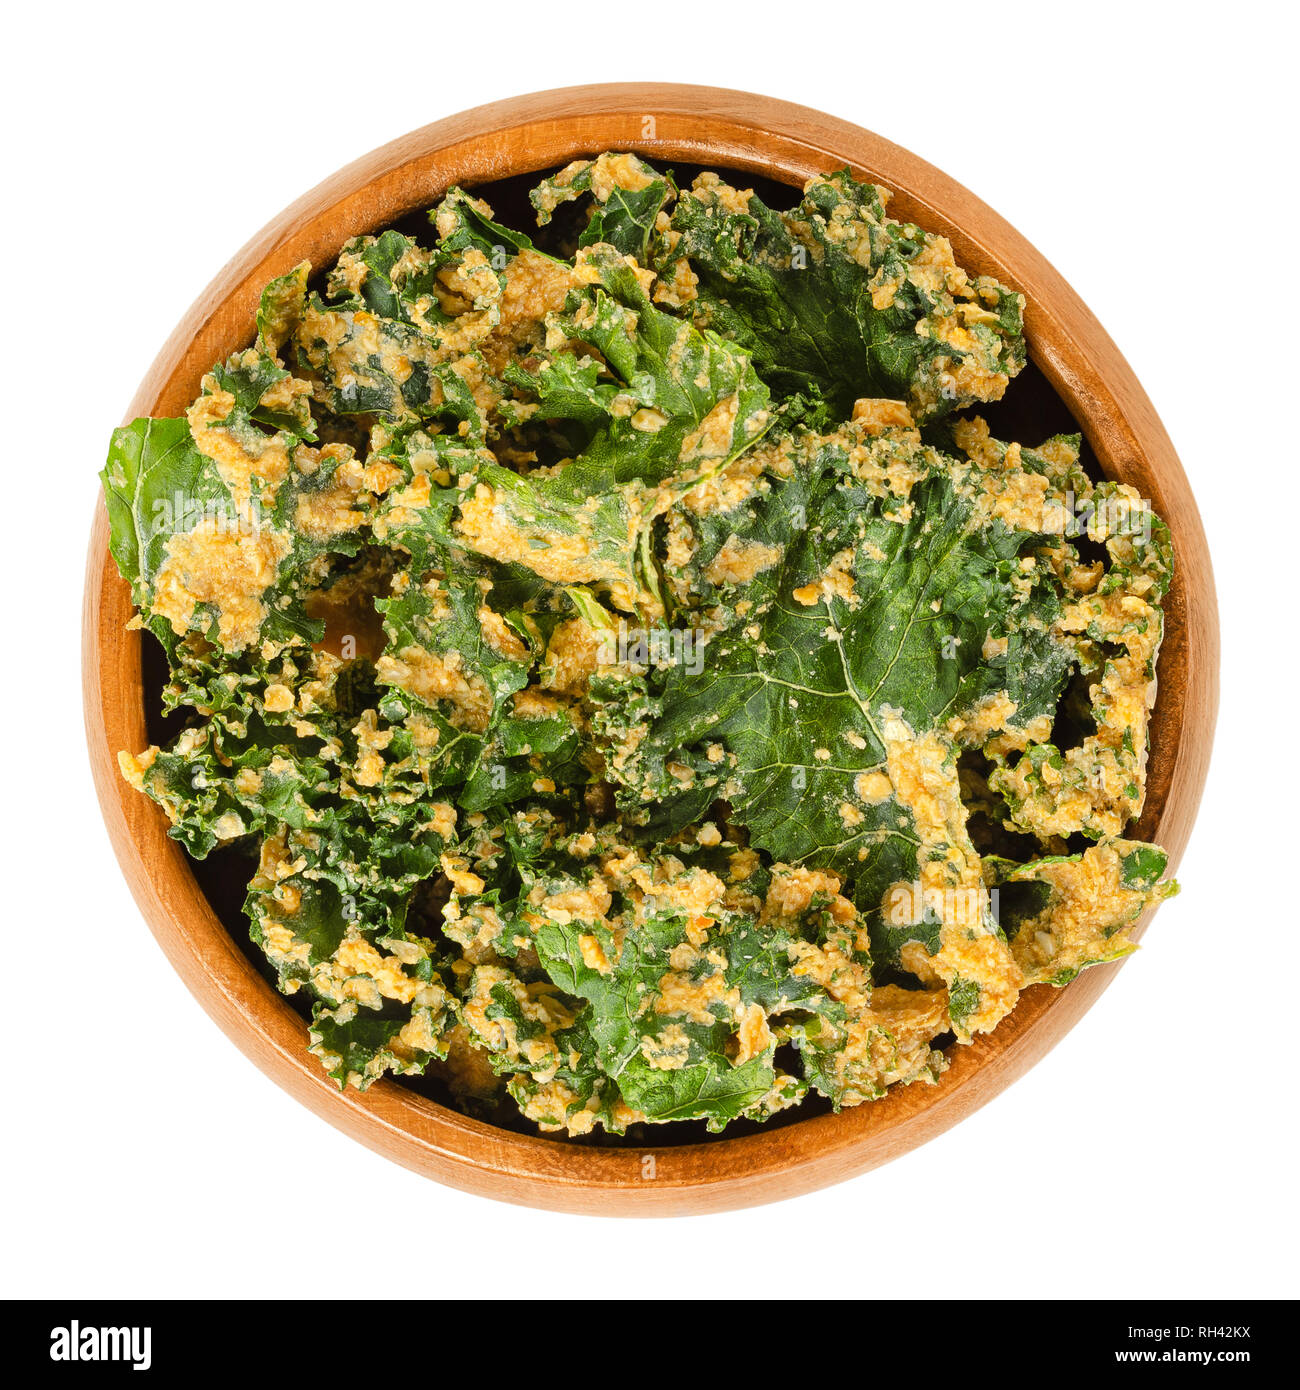 Homemade kale chips in wooden bowl. Dehydrated green leaf cabbage, coated with blended spices, nuts and vegetables. Snack and potato chip substitute. - Stock Image